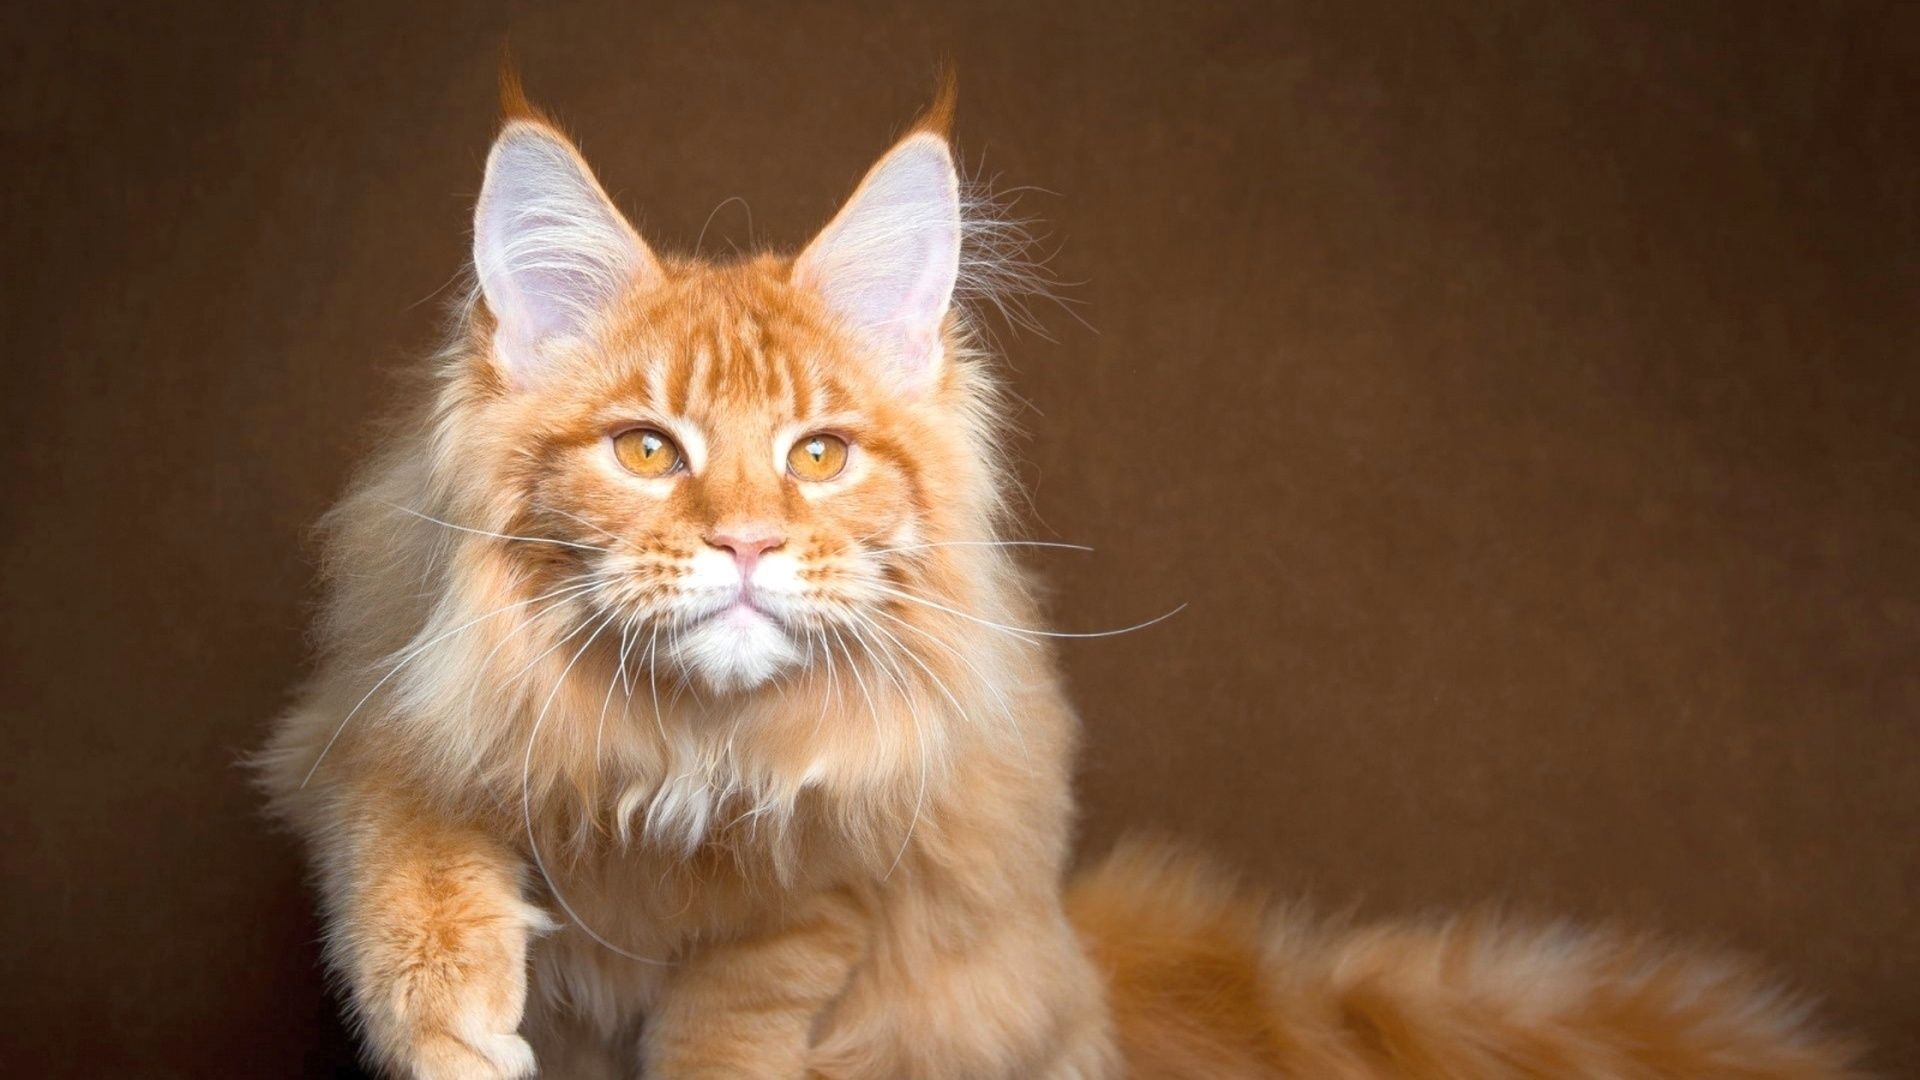 Maine Coon Cat Wallpaper theme